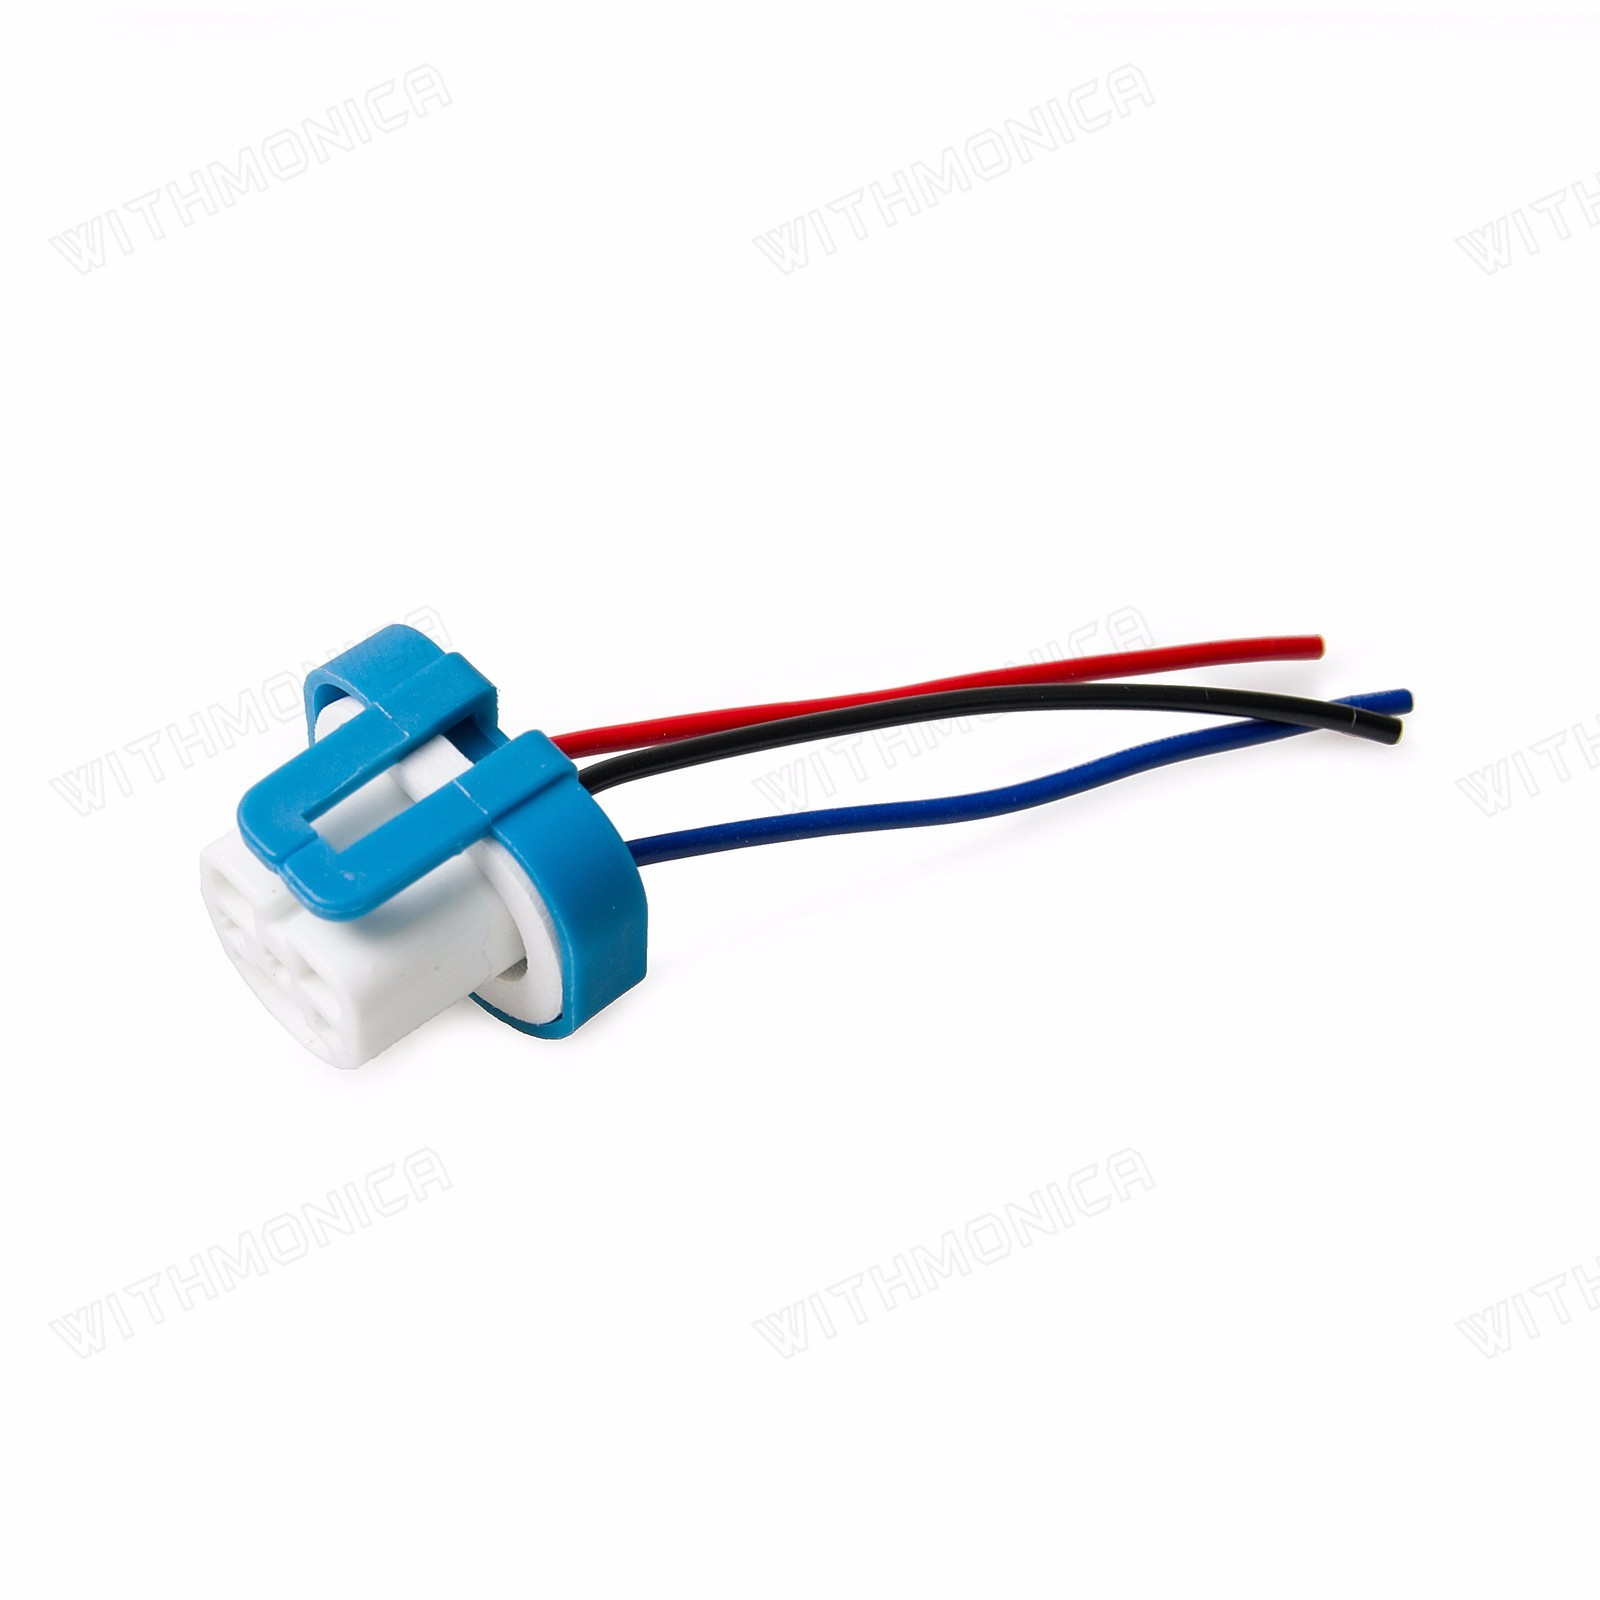 Wiring Terminals Of 9007 Headlamp Bulb Detailed Diagrams Headlight Socket 9004 Hb1 Hb5 Lamp Gm Ford Automotive Switch Diagram